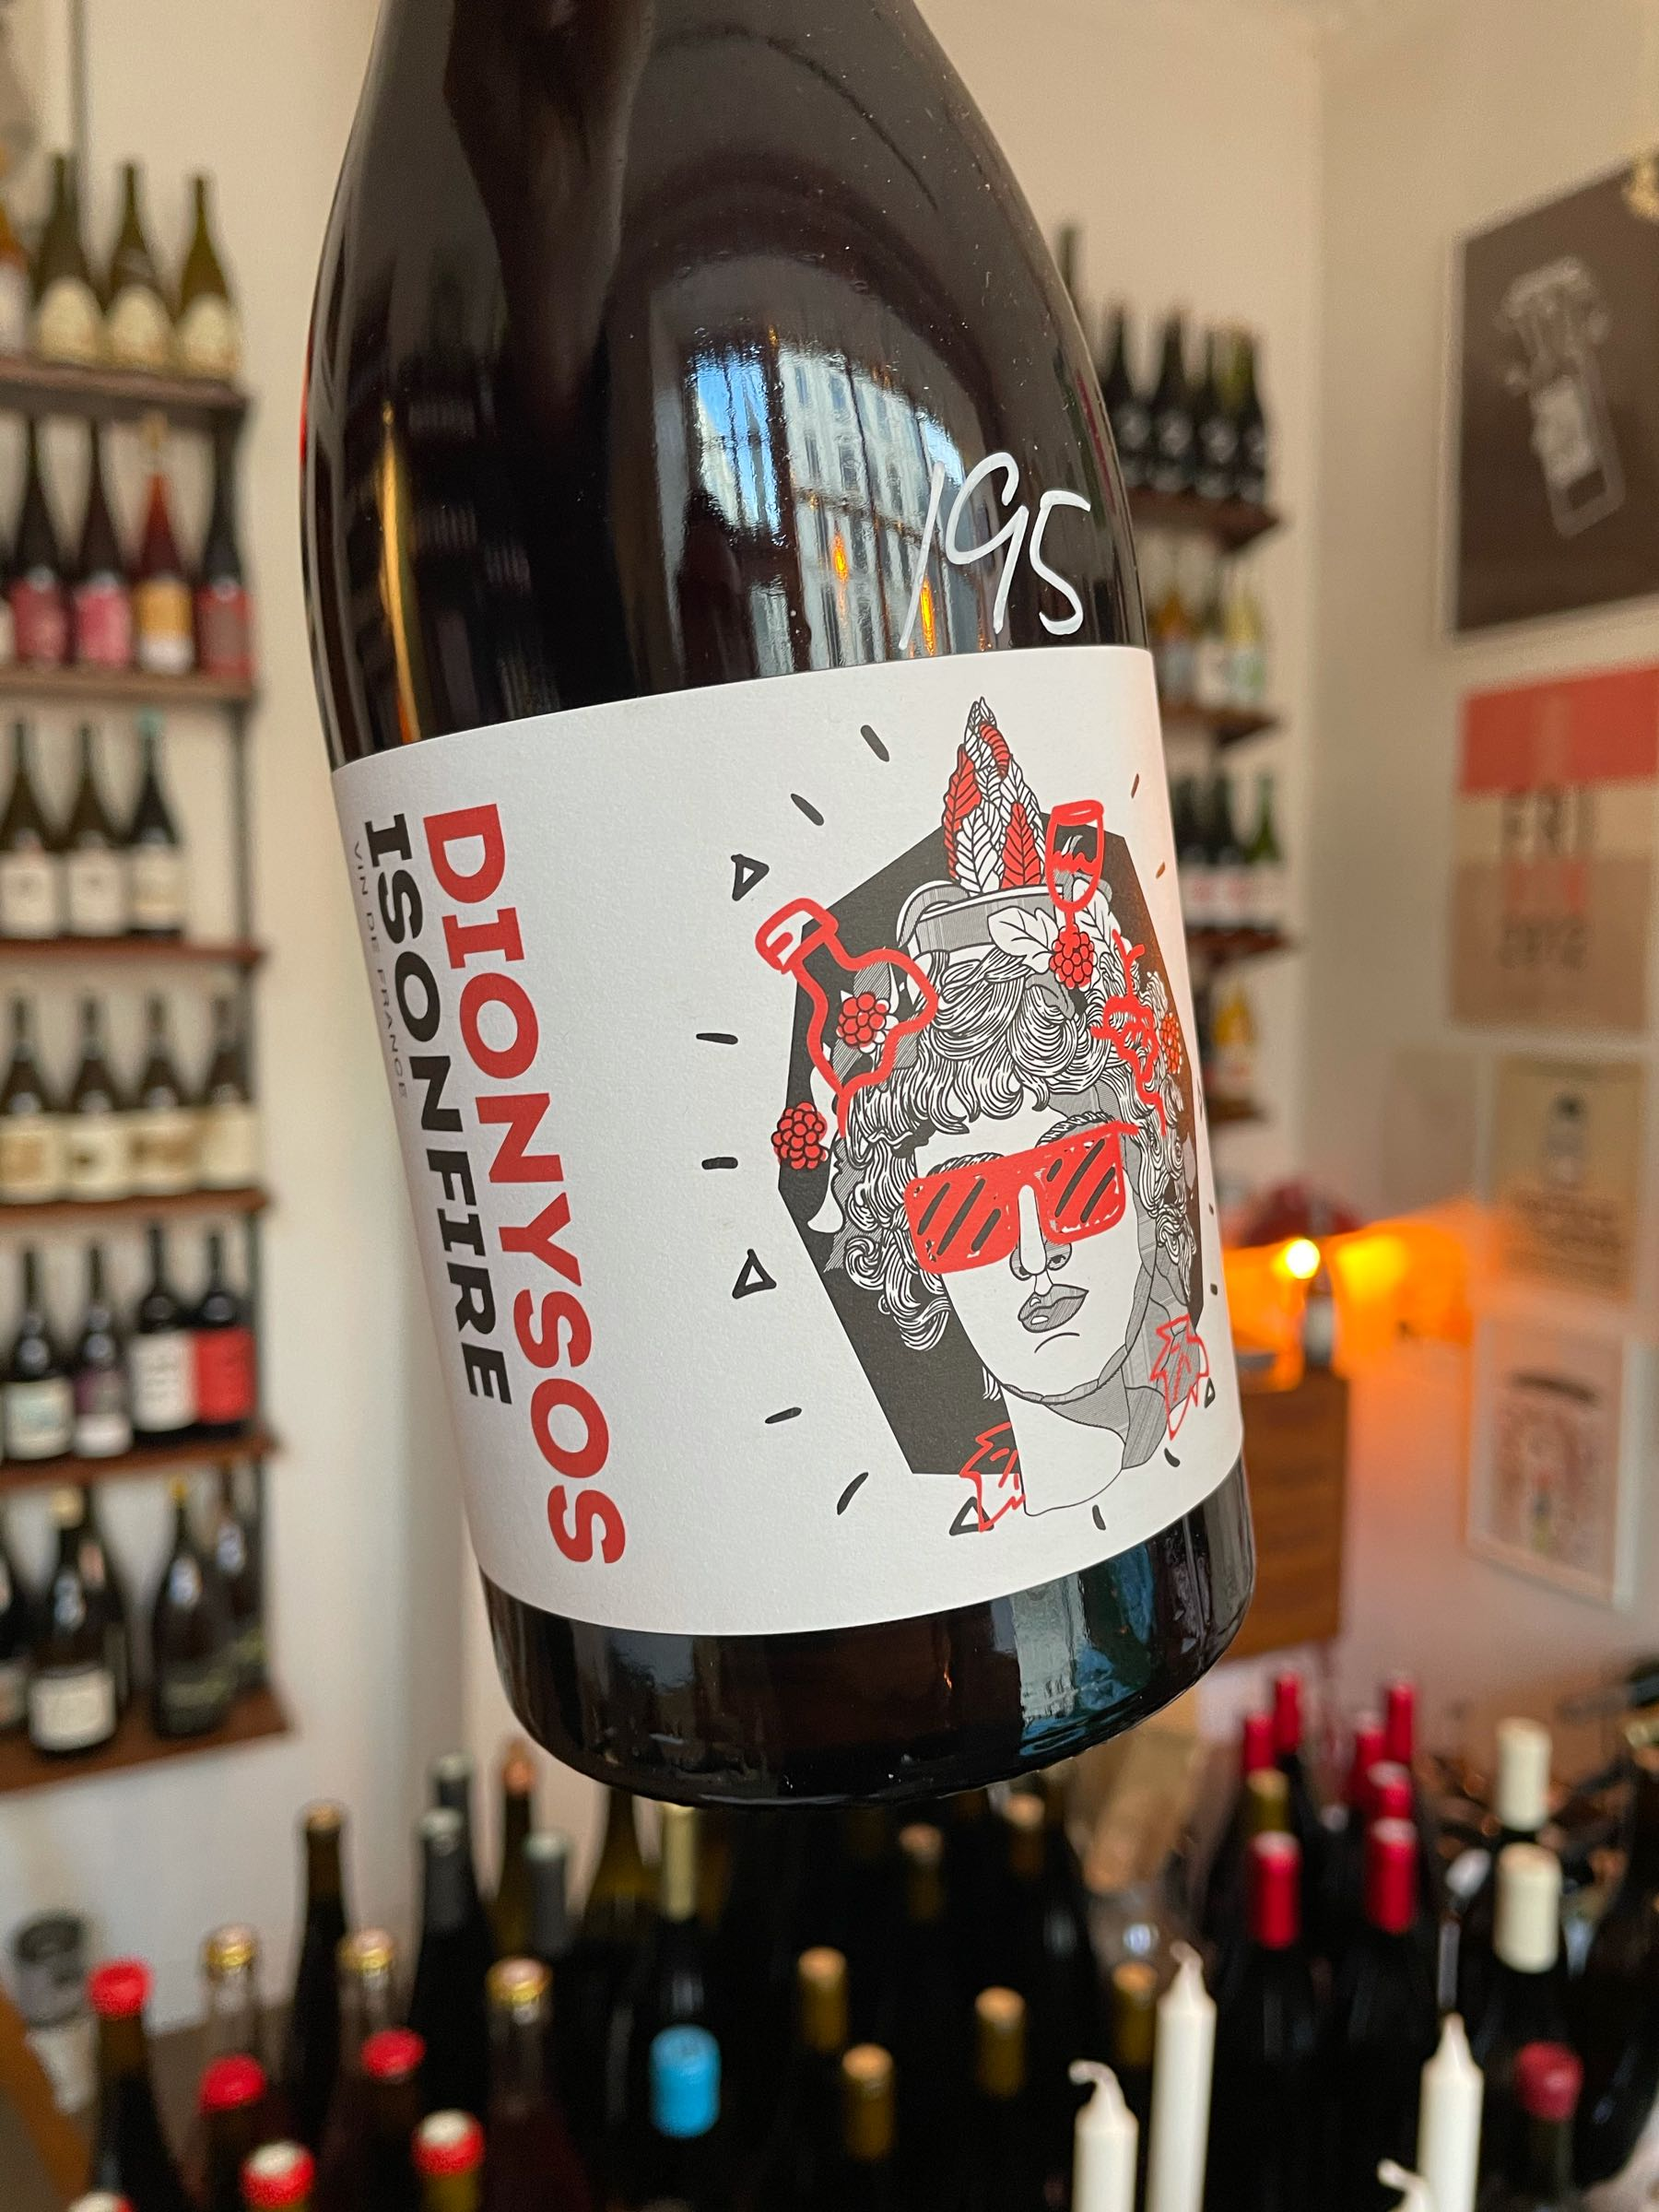 Dionysos 2019: Gamay Negoce - Domaine des Marnes Blanches